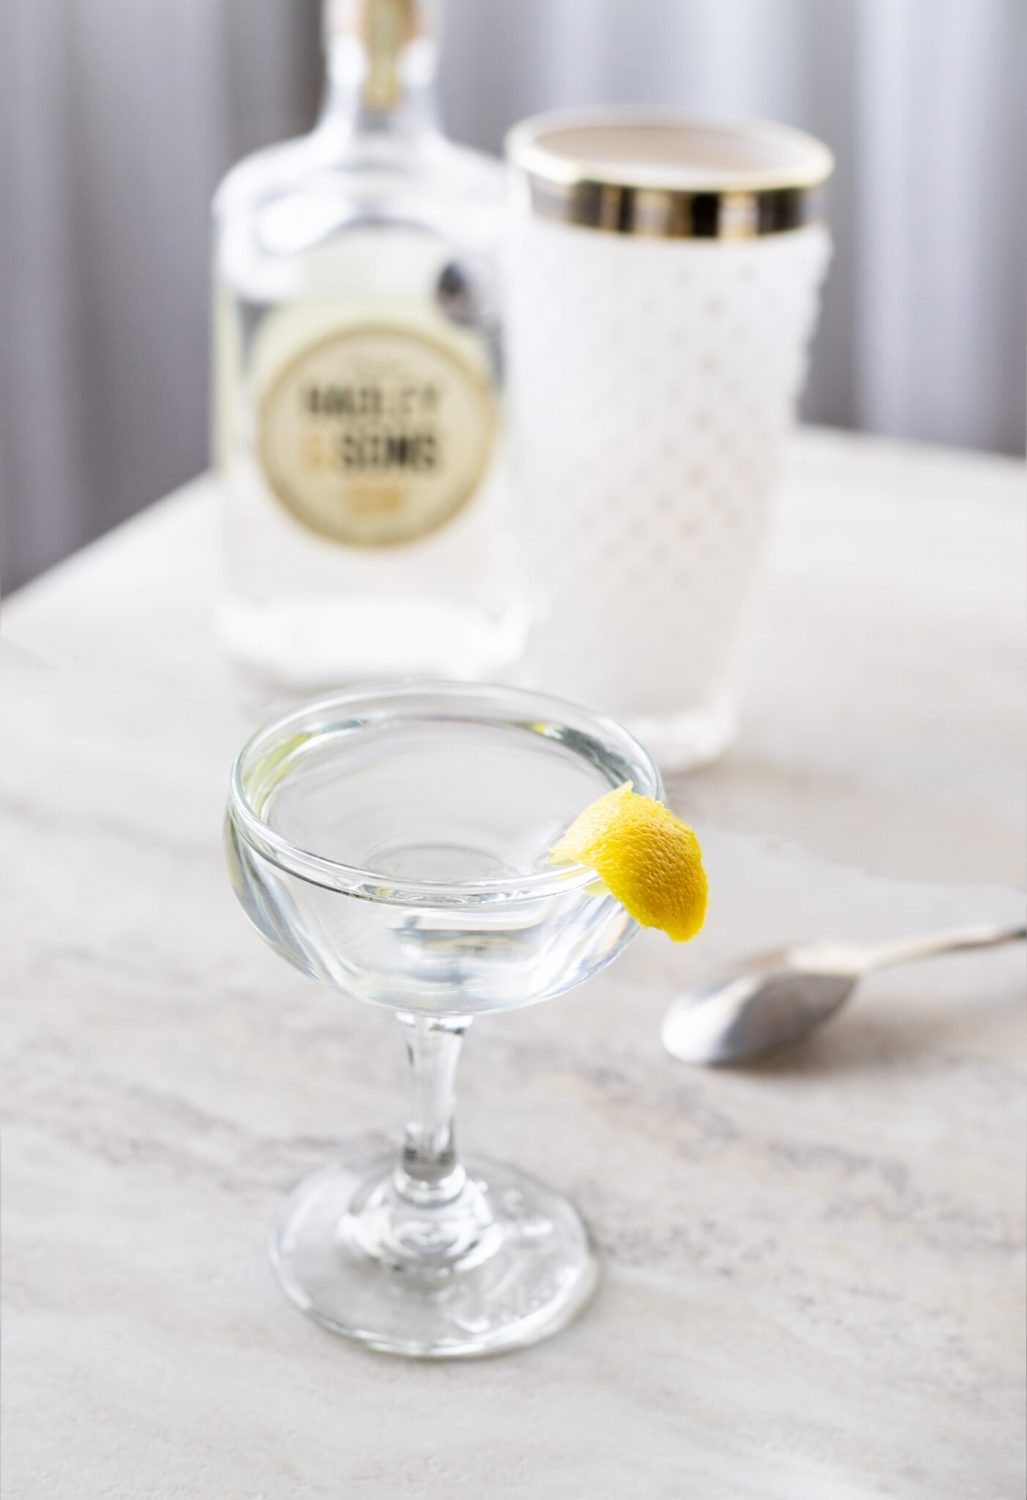 Elle Talk's classic Gin Martini recipe using London Dry Gin, dry vermouth, and orange bitters. It's a wet gin martini that's stirred. #gin #cocktail #cocktailrecipe #martini #gincocktail